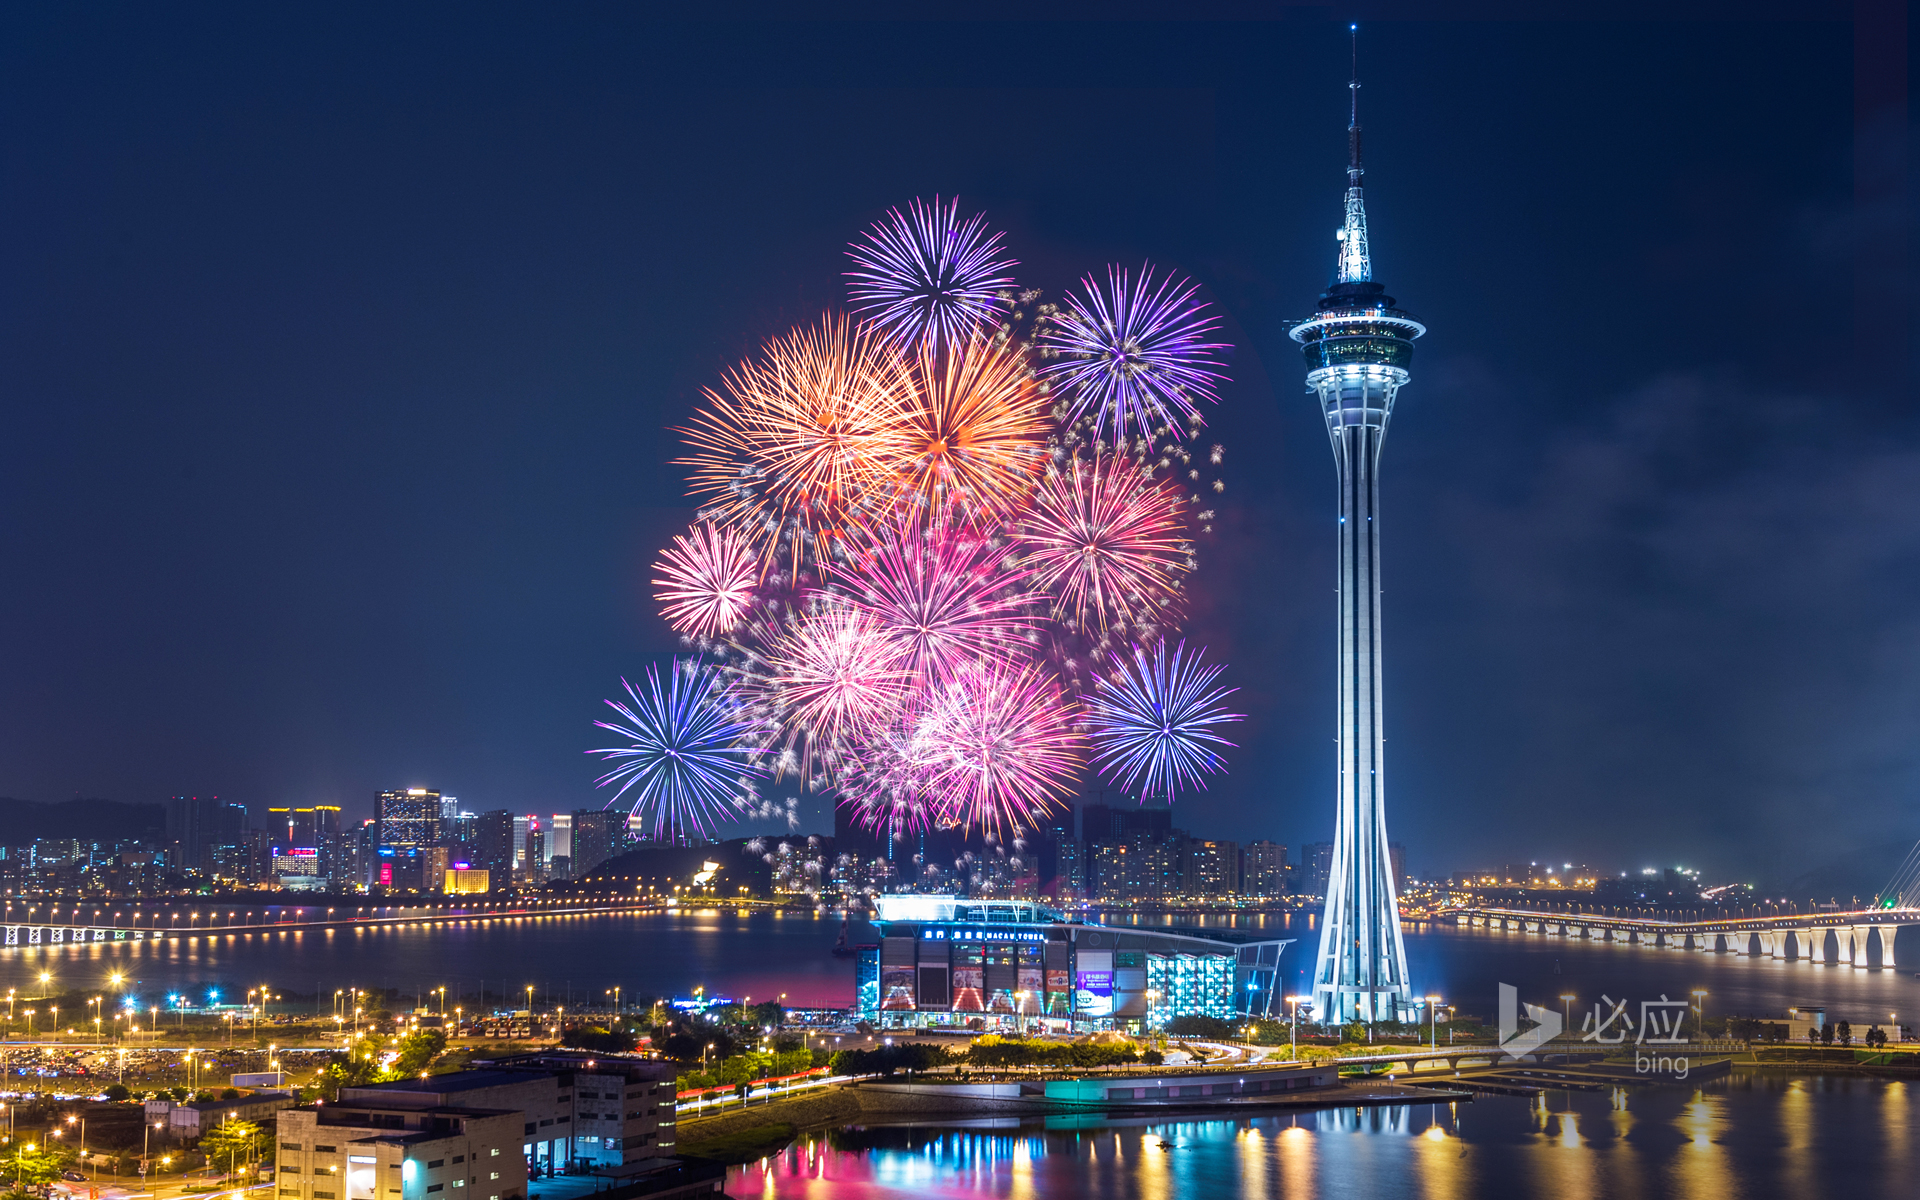 Gorgeous fireworks bloom over the bay of Macau